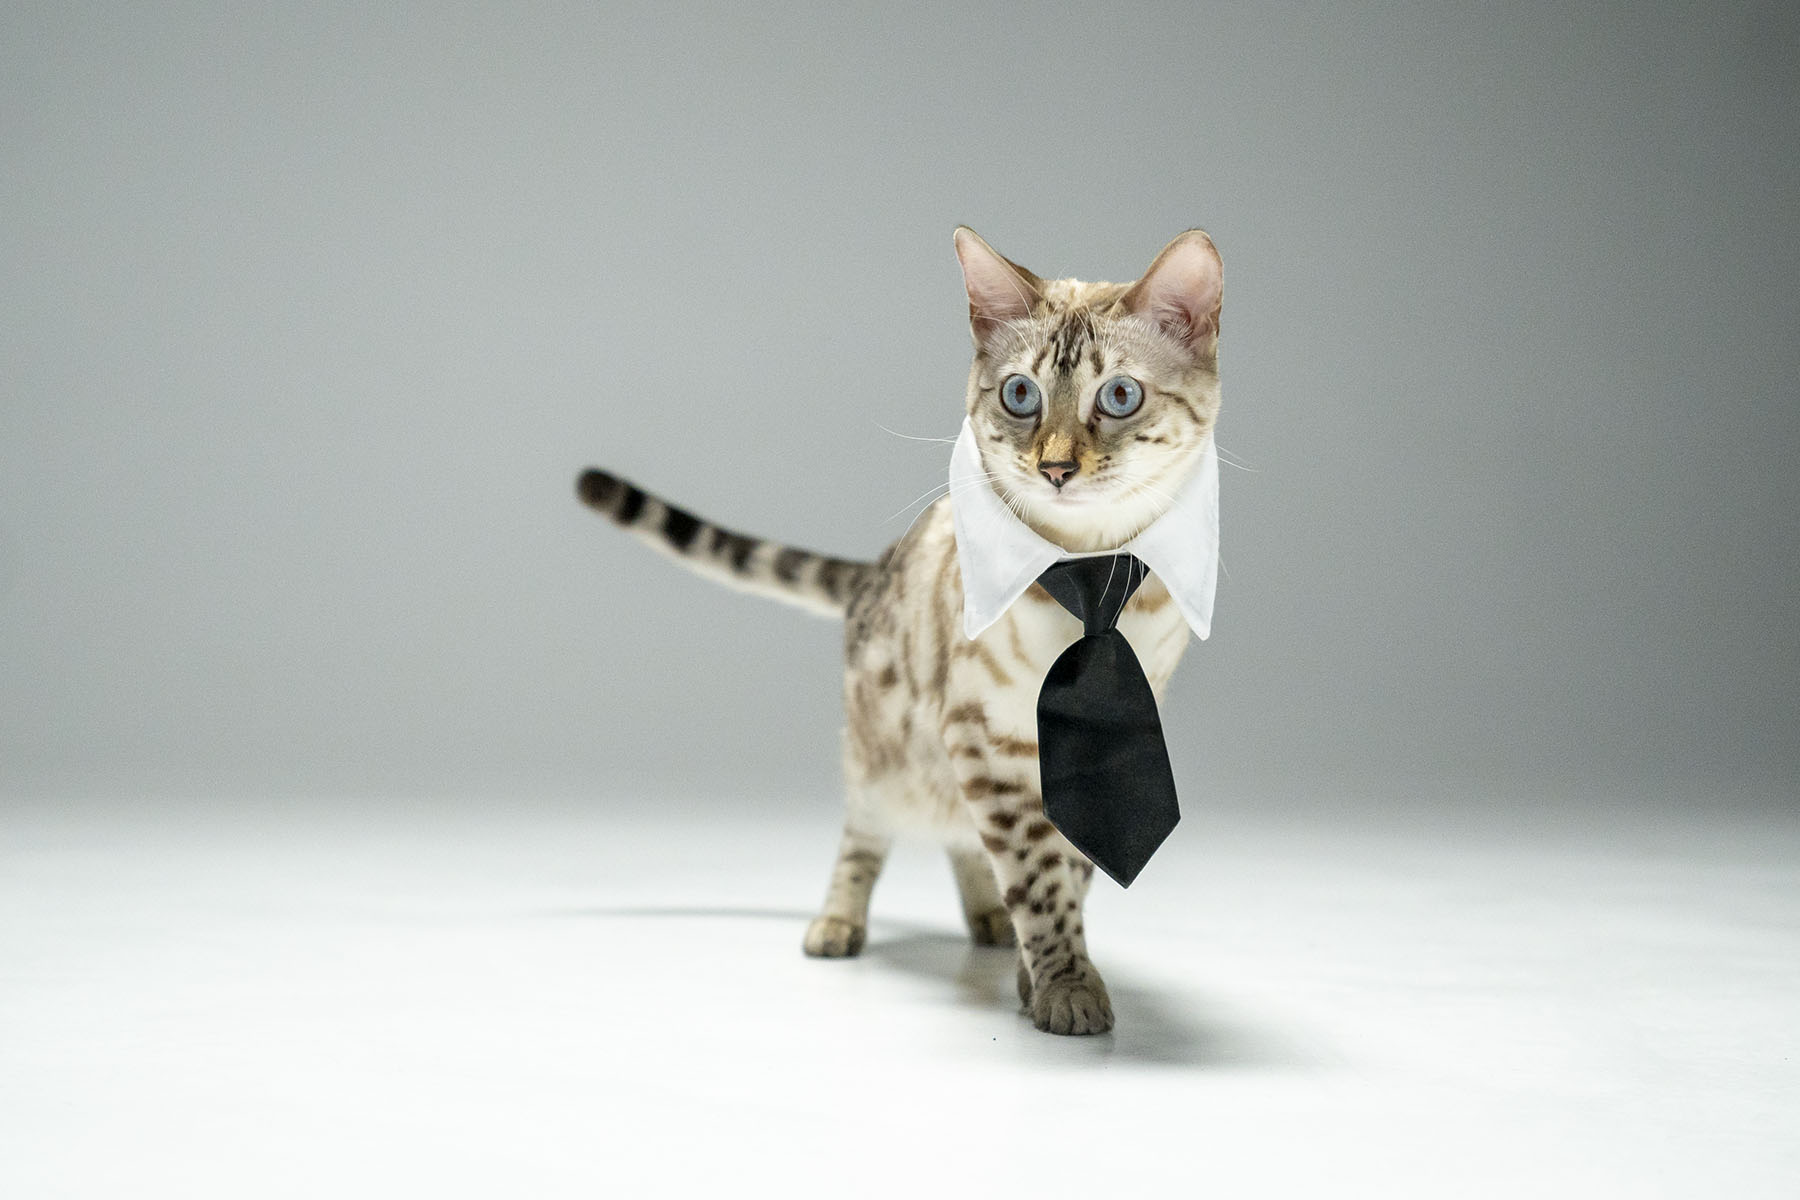 Cat with tie (Variant 2)